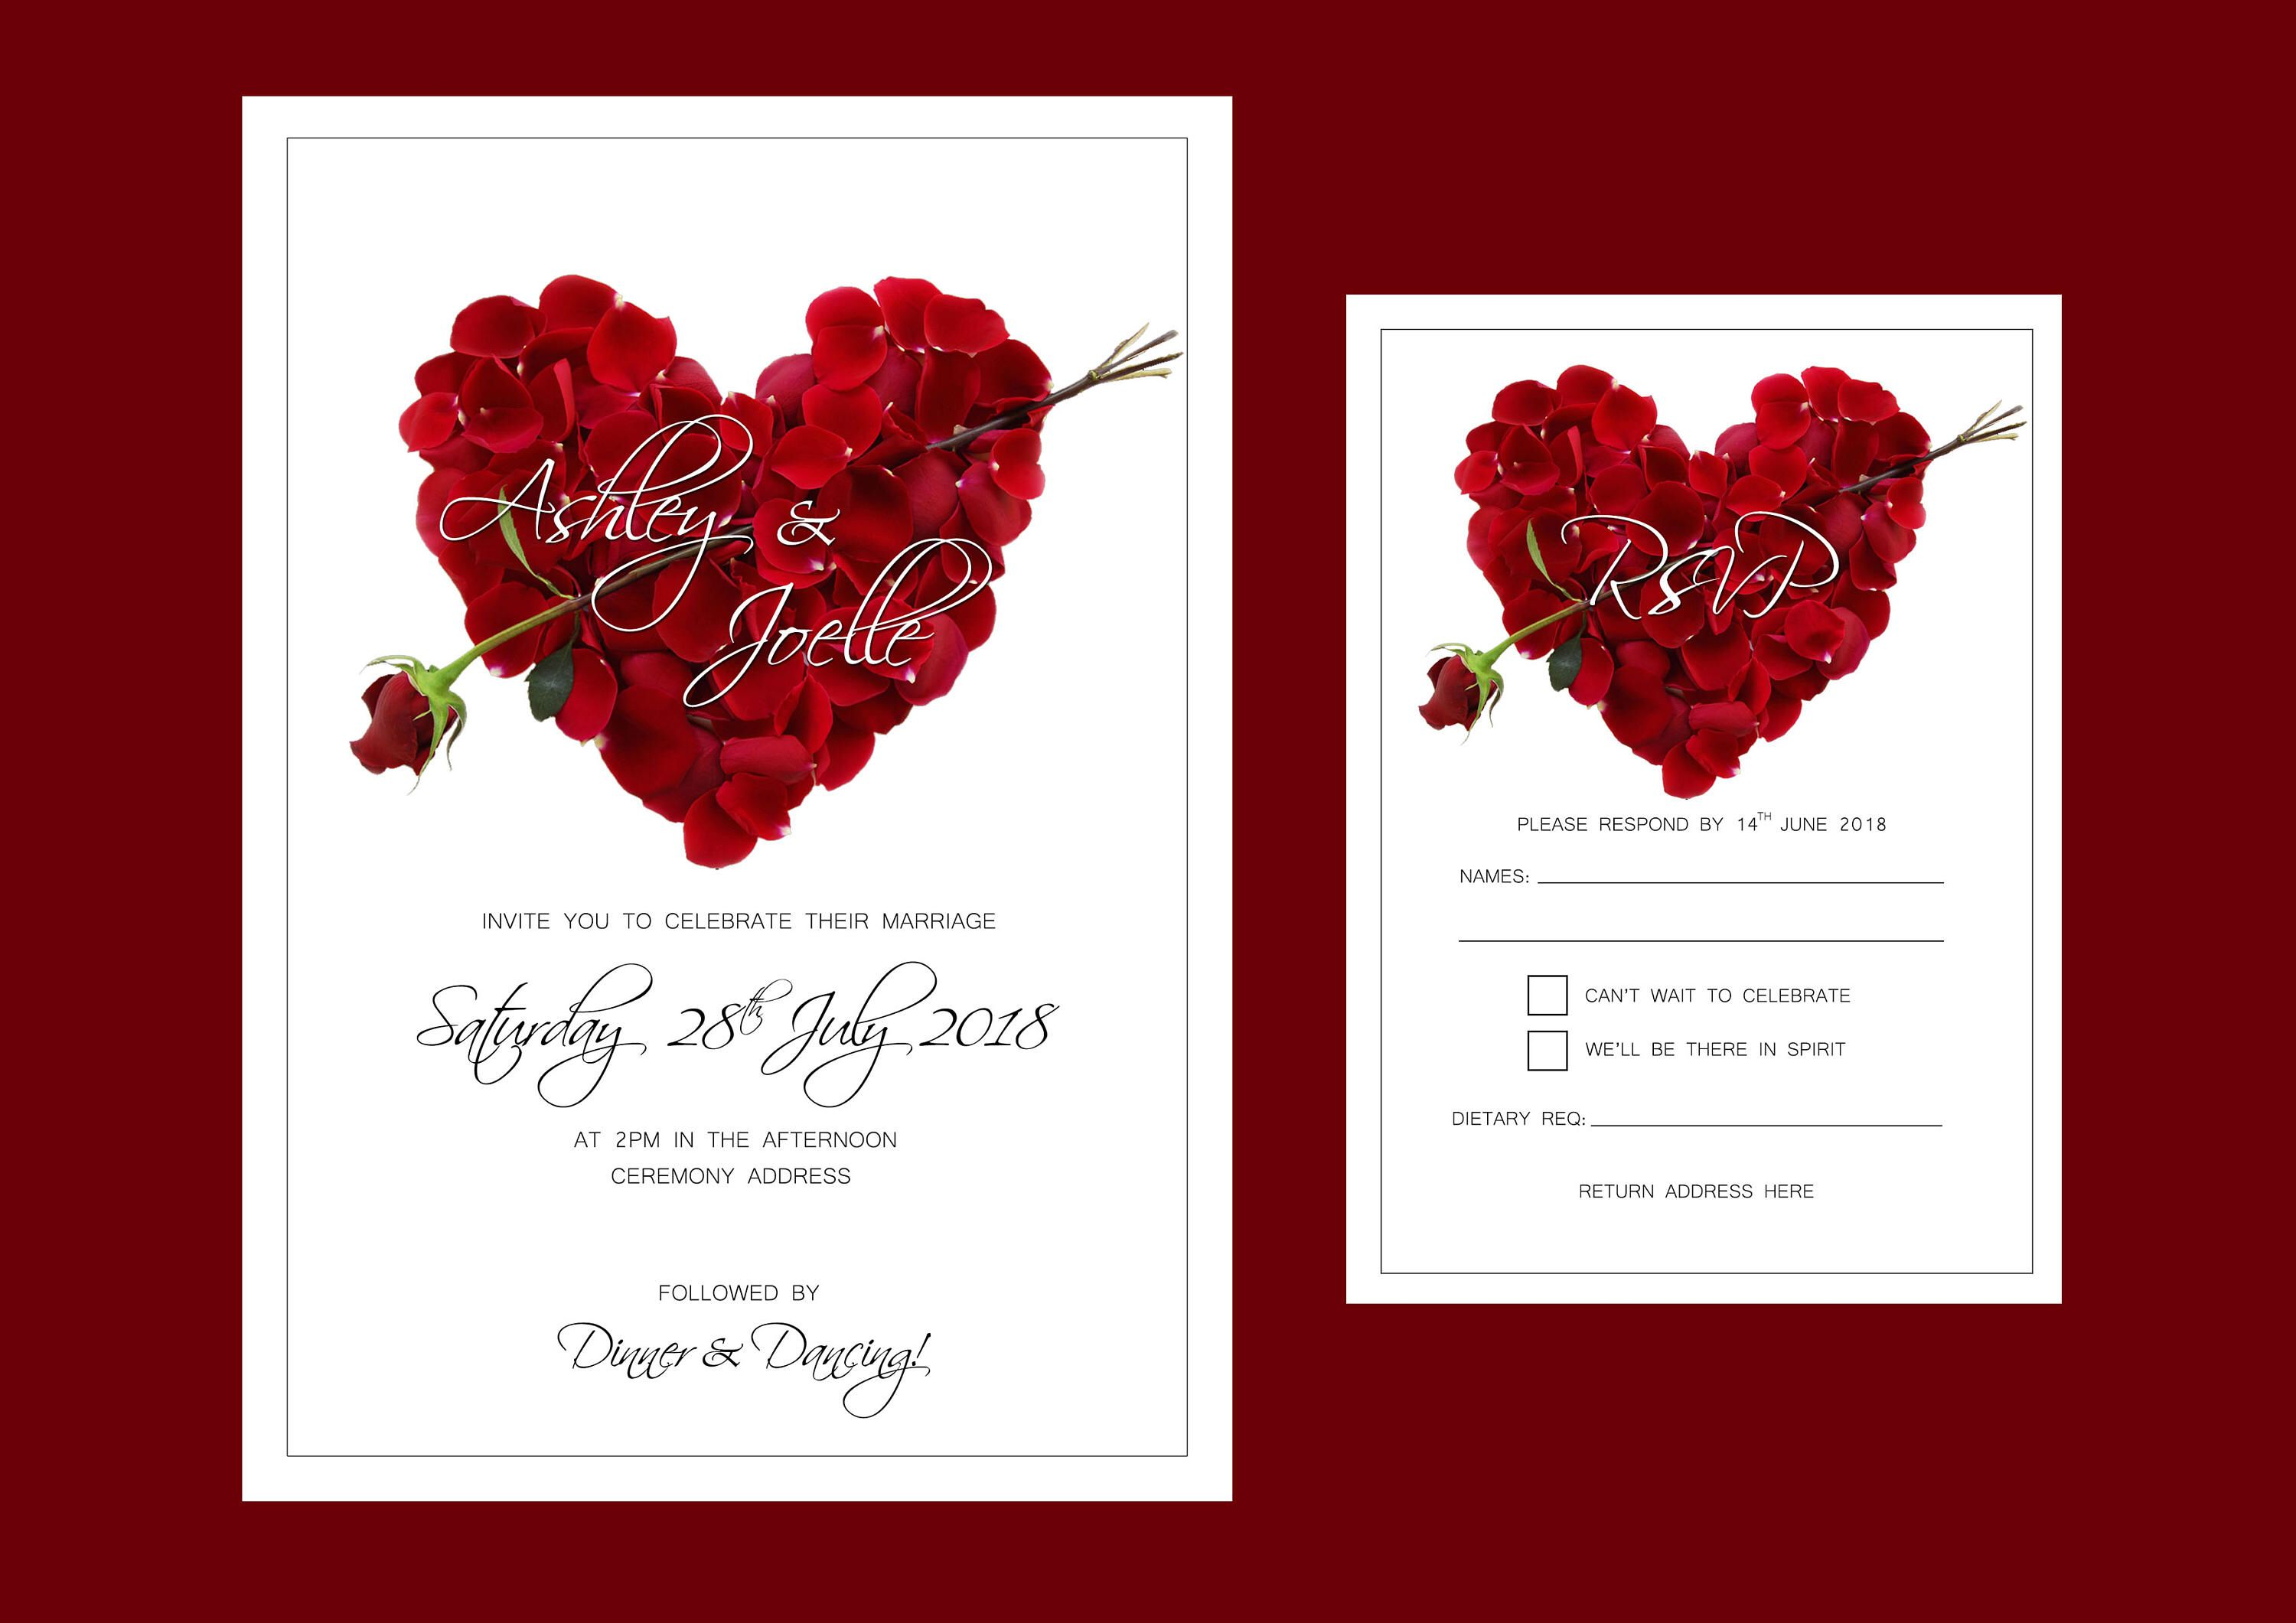 Enchanting Wedding Invitations Etiquette Addressing Festooning ...